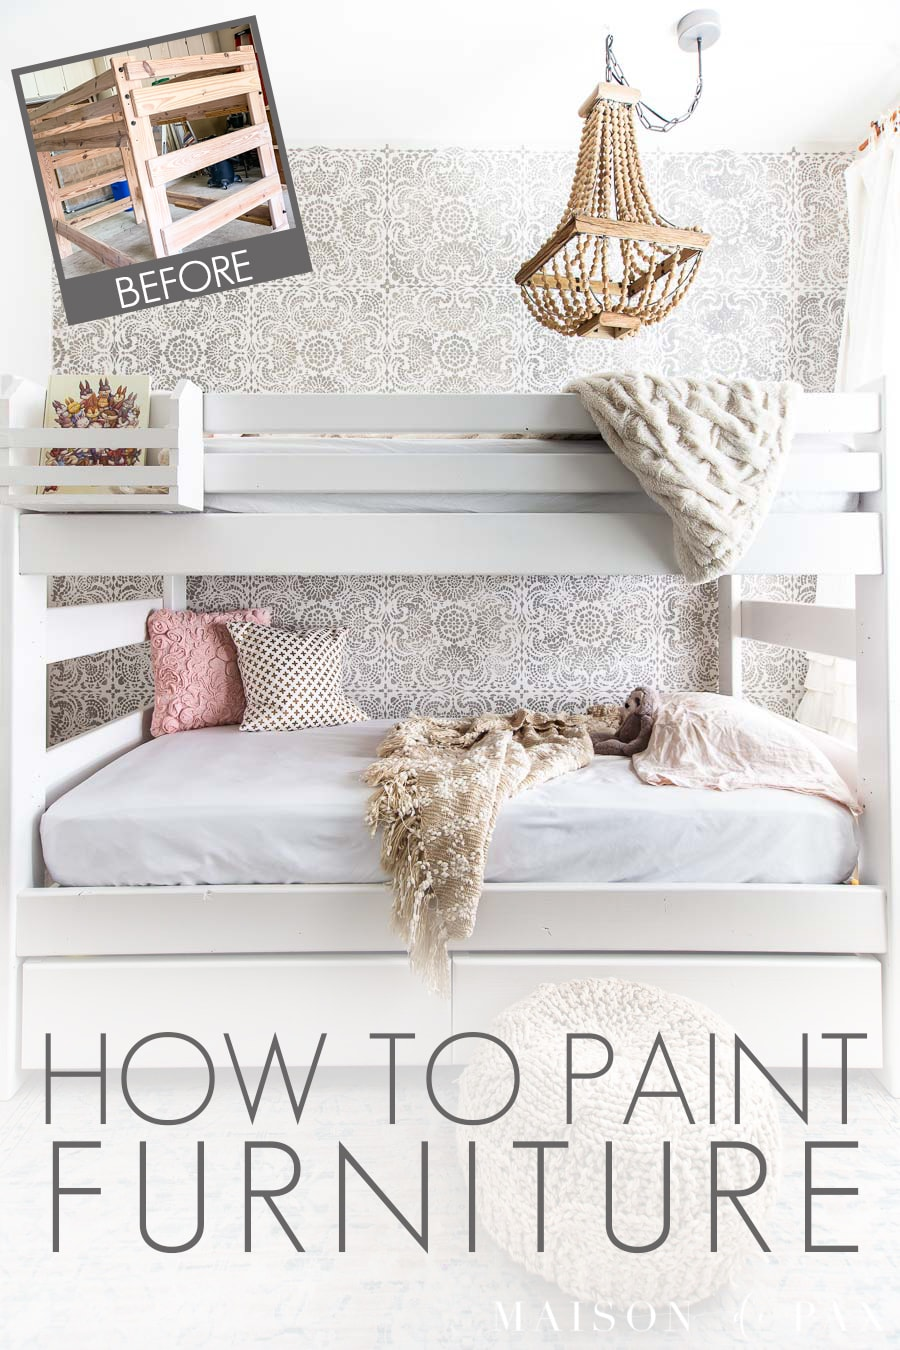 before and after painted bunk bed | Maison de Pax